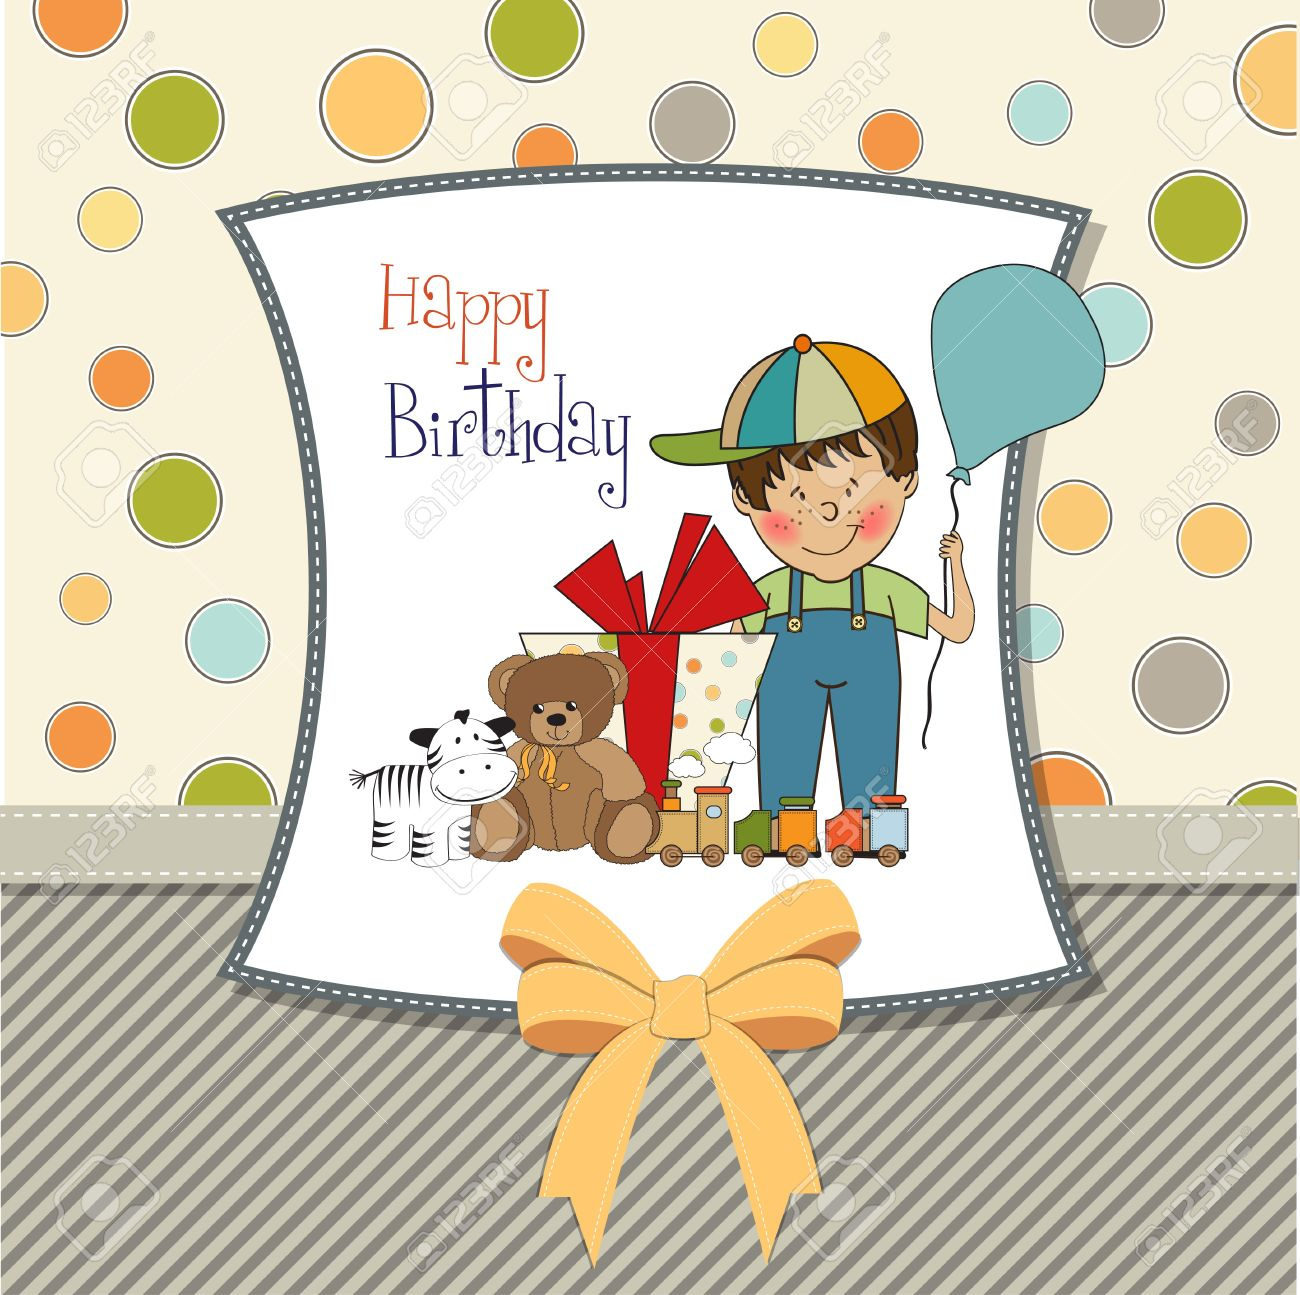 Birthday greeting card with little boy and presents royalty free birthday greeting card with little boy and presents stock vector 11497832 bookmarktalkfo Gallery